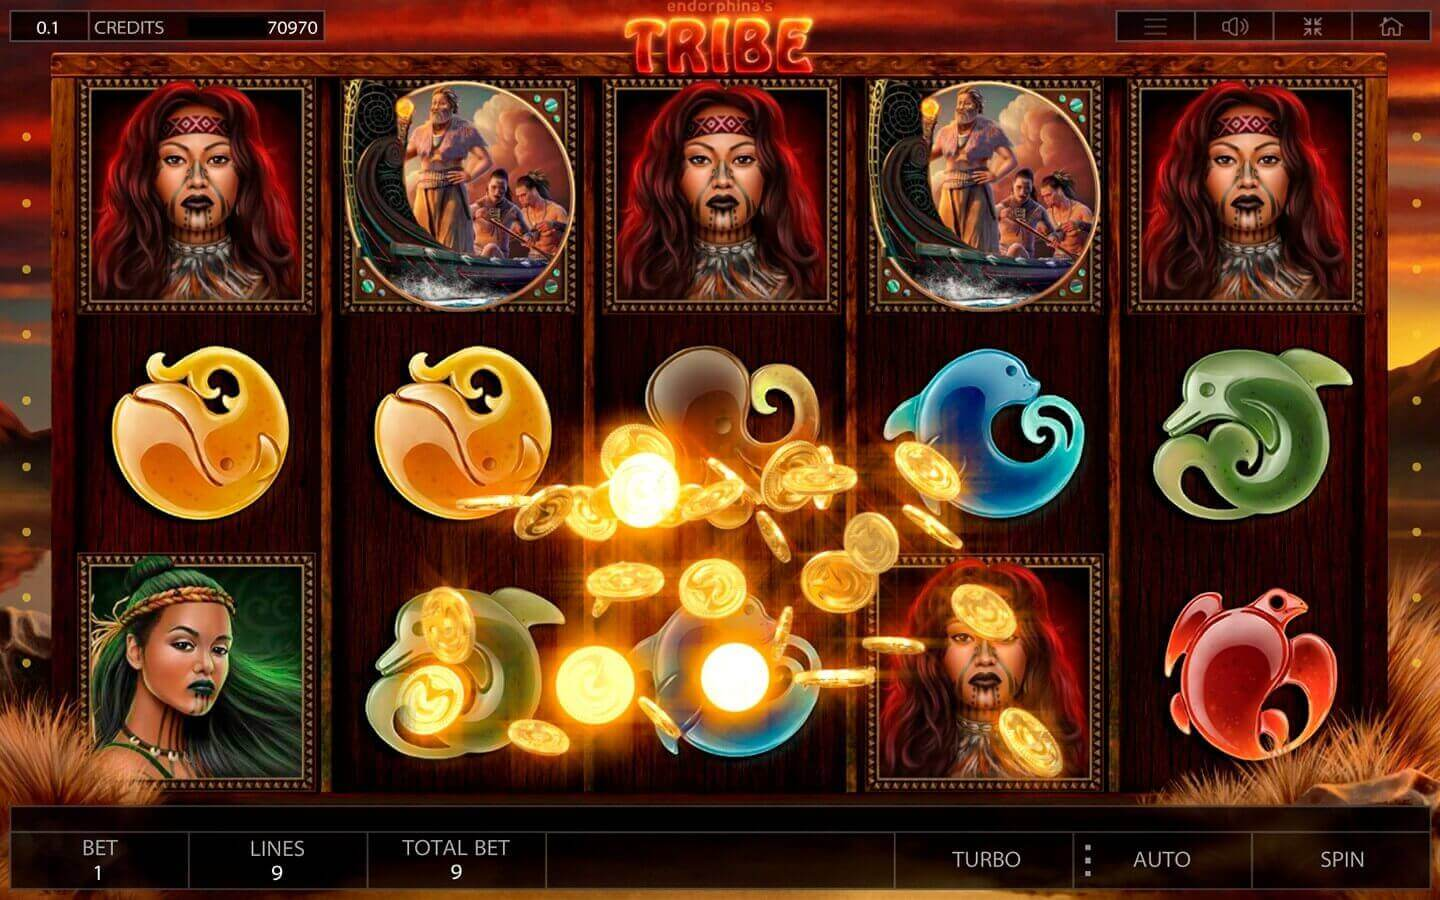 Tribe slot machine play demo